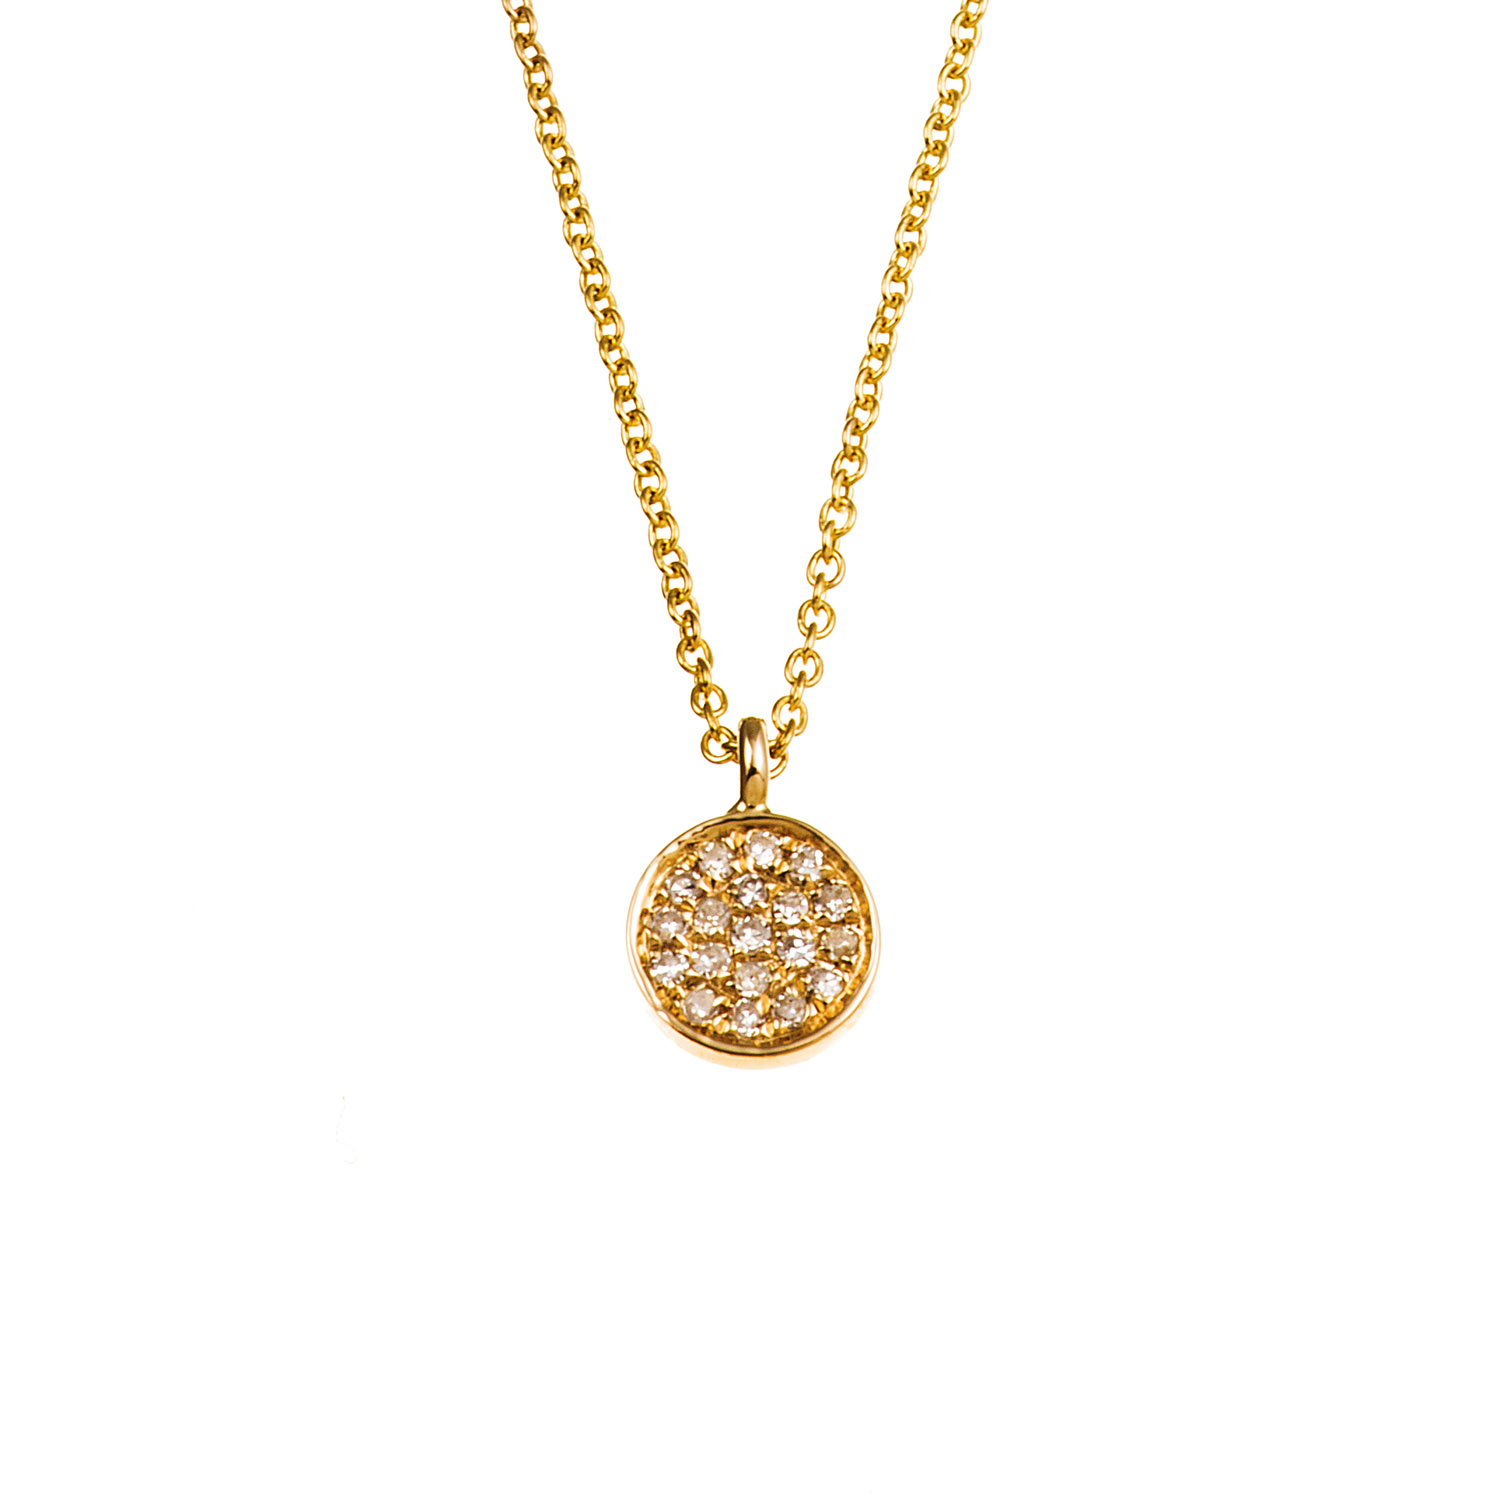 18k Gold And Diamond Mini Circle Necklace (n5705 Y) Regarding Newest Circle Of Sparkle Necklaces (View 18 of 25)